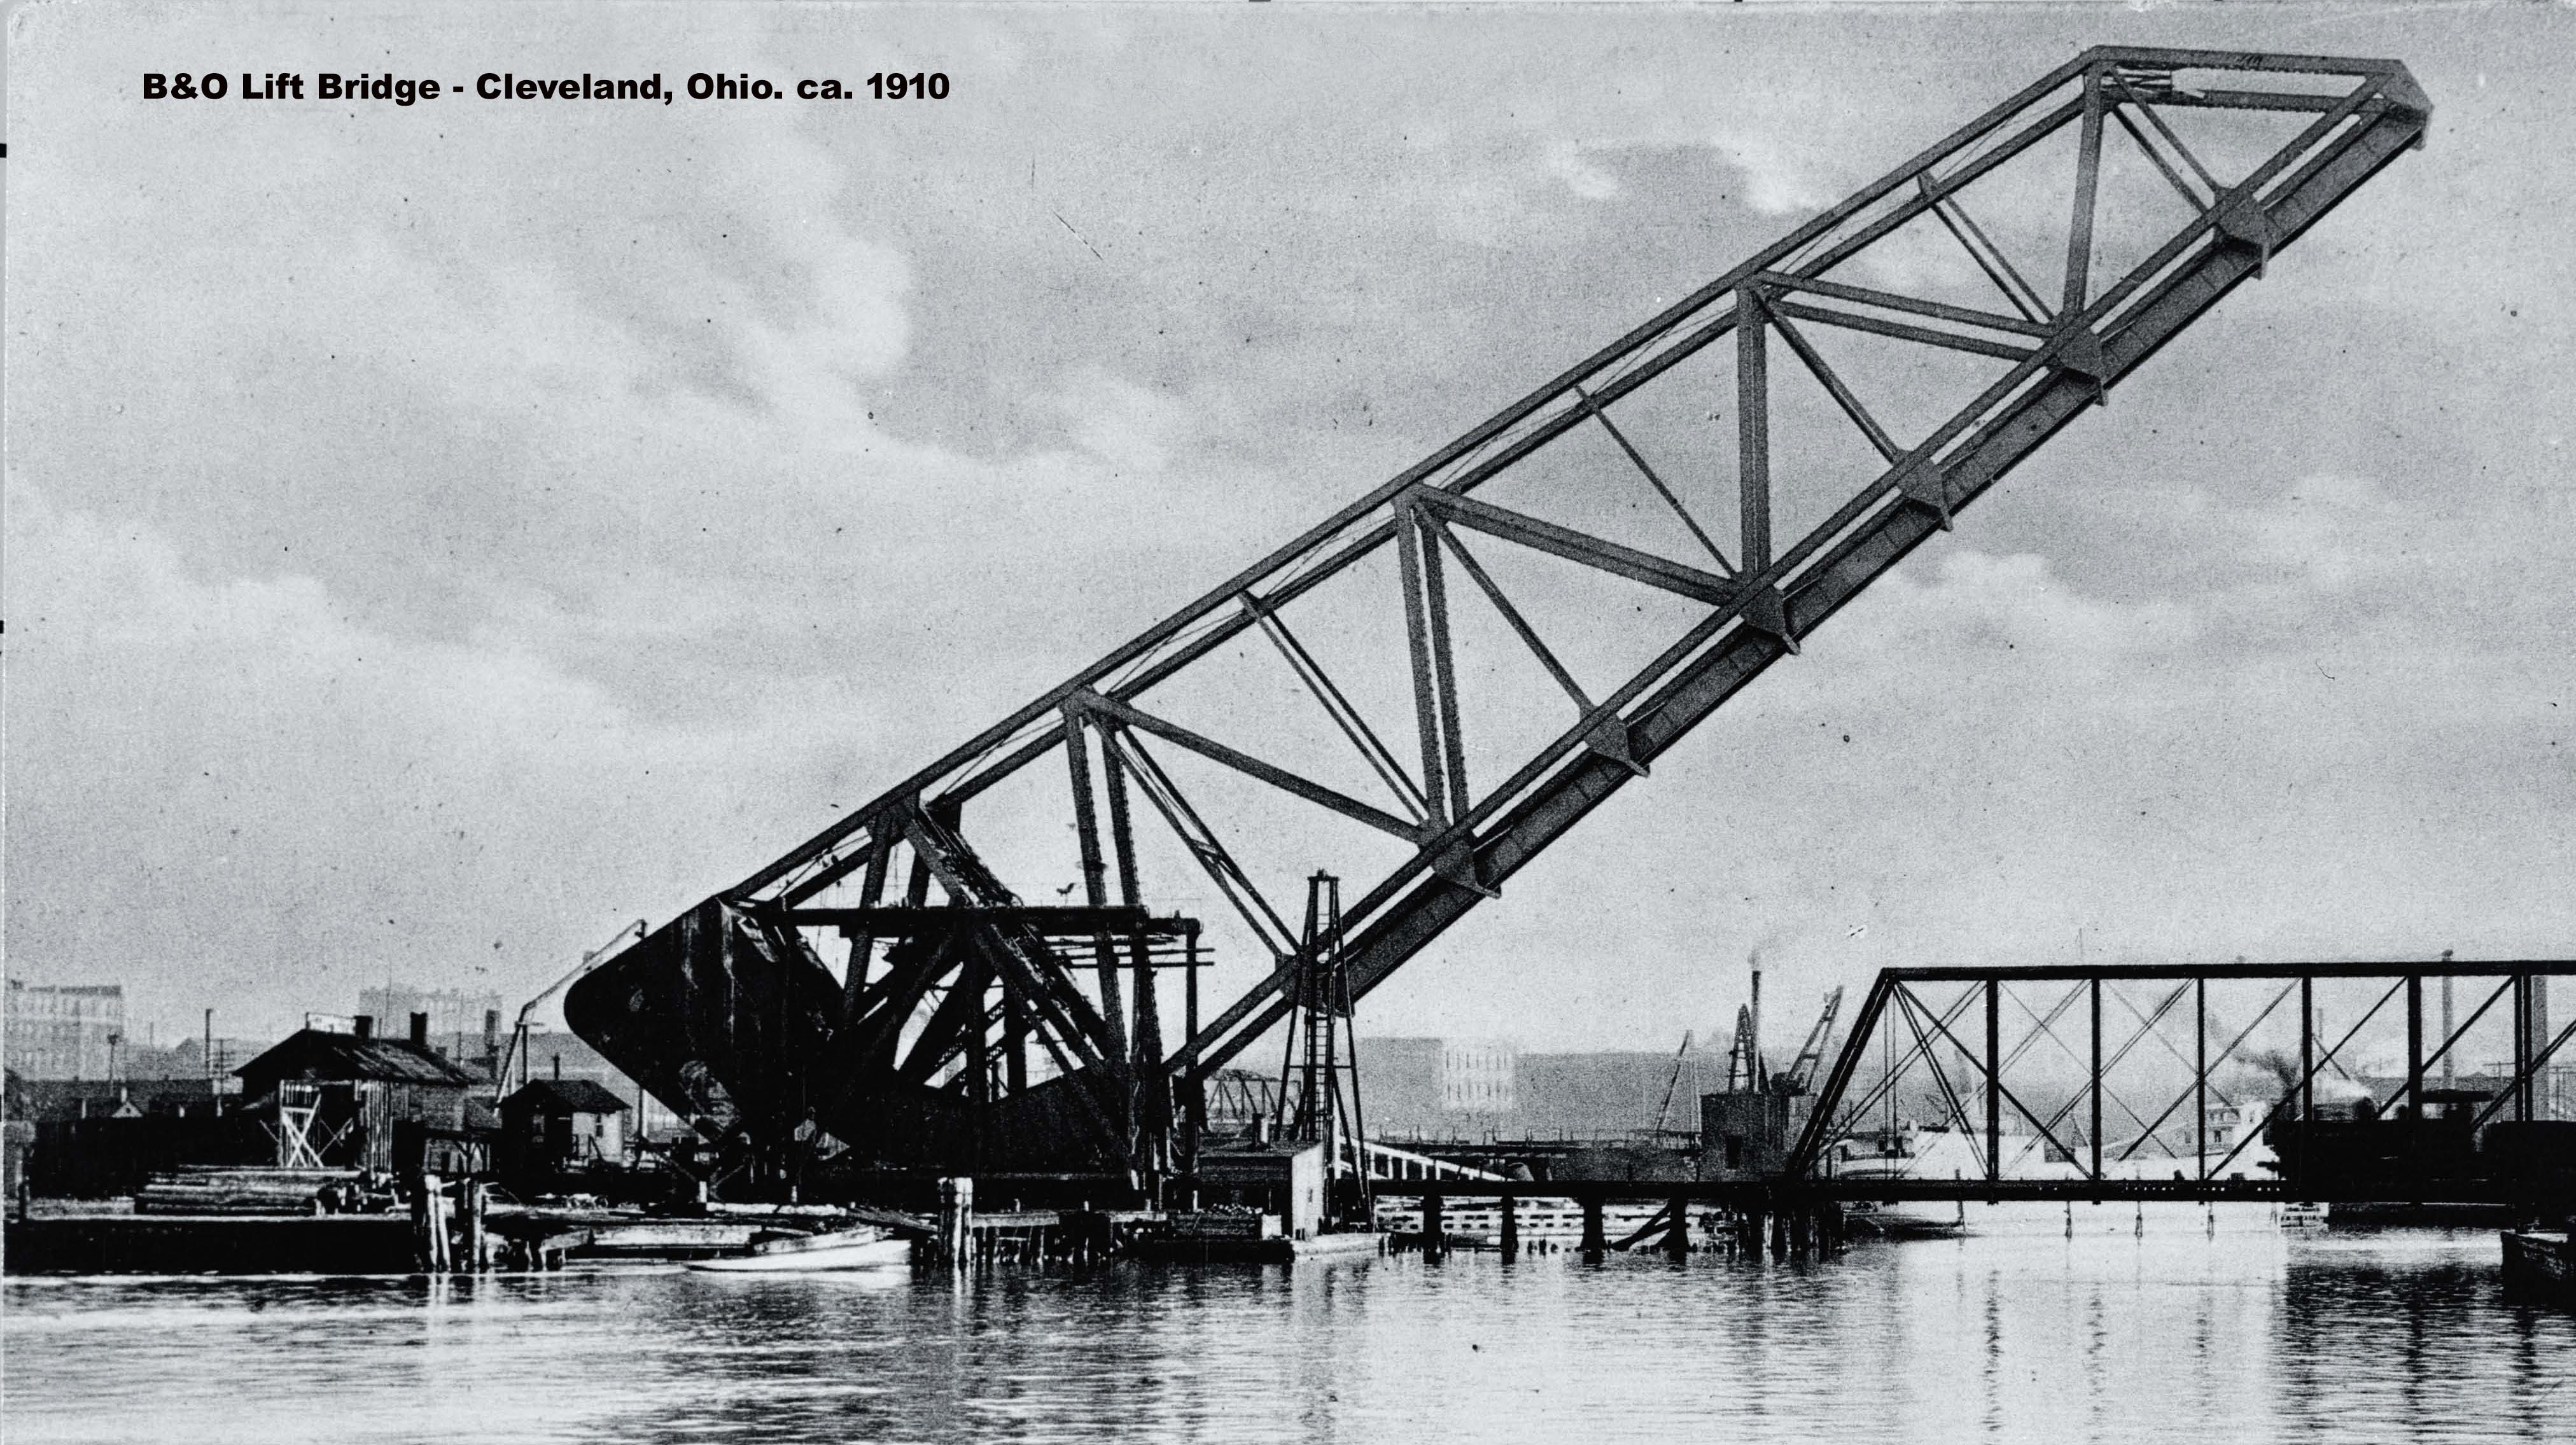 B&O Lift Bridge